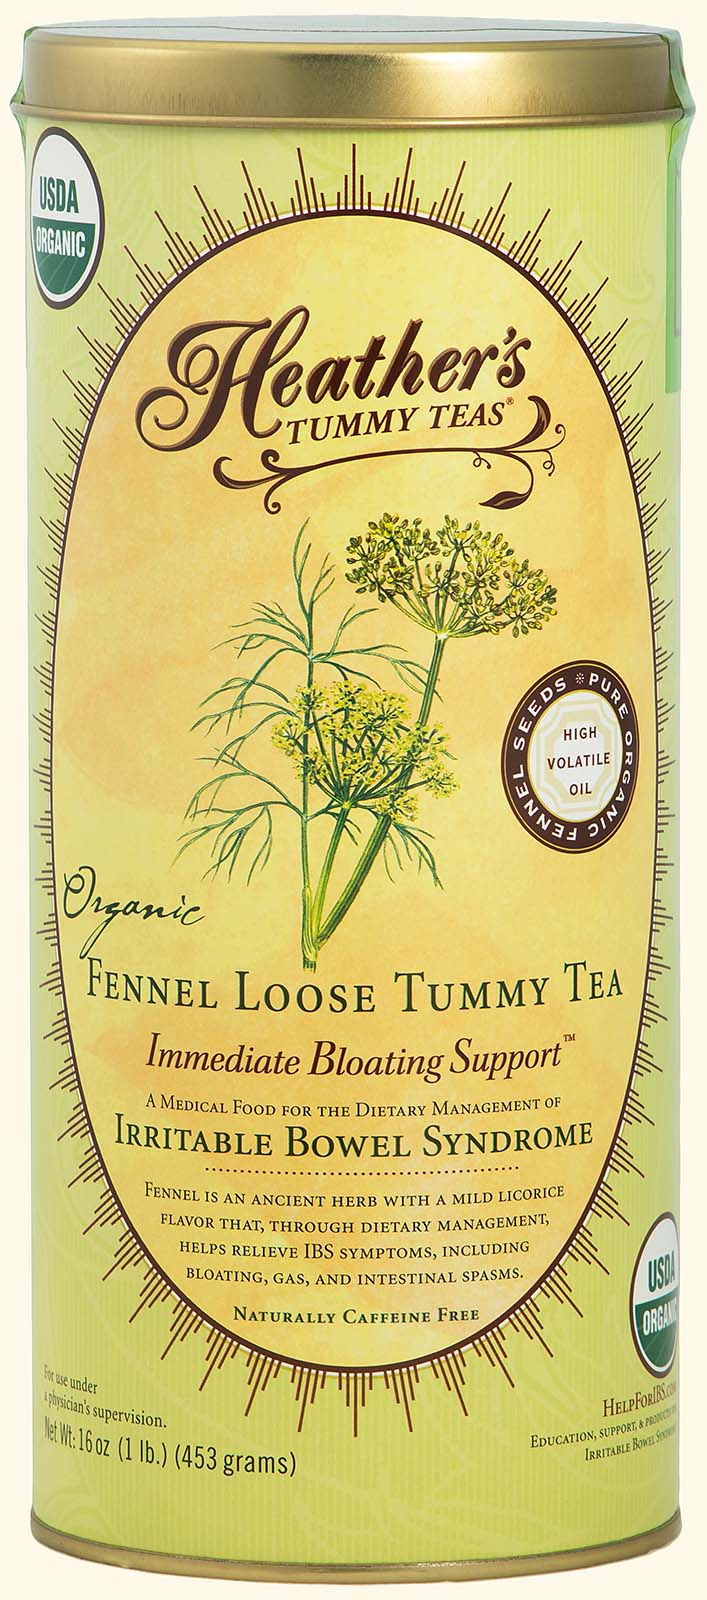 Fennel<br>Tummy Tea<br>LOOSE 1lb. Can<br><em>Bloating & Gas</em>